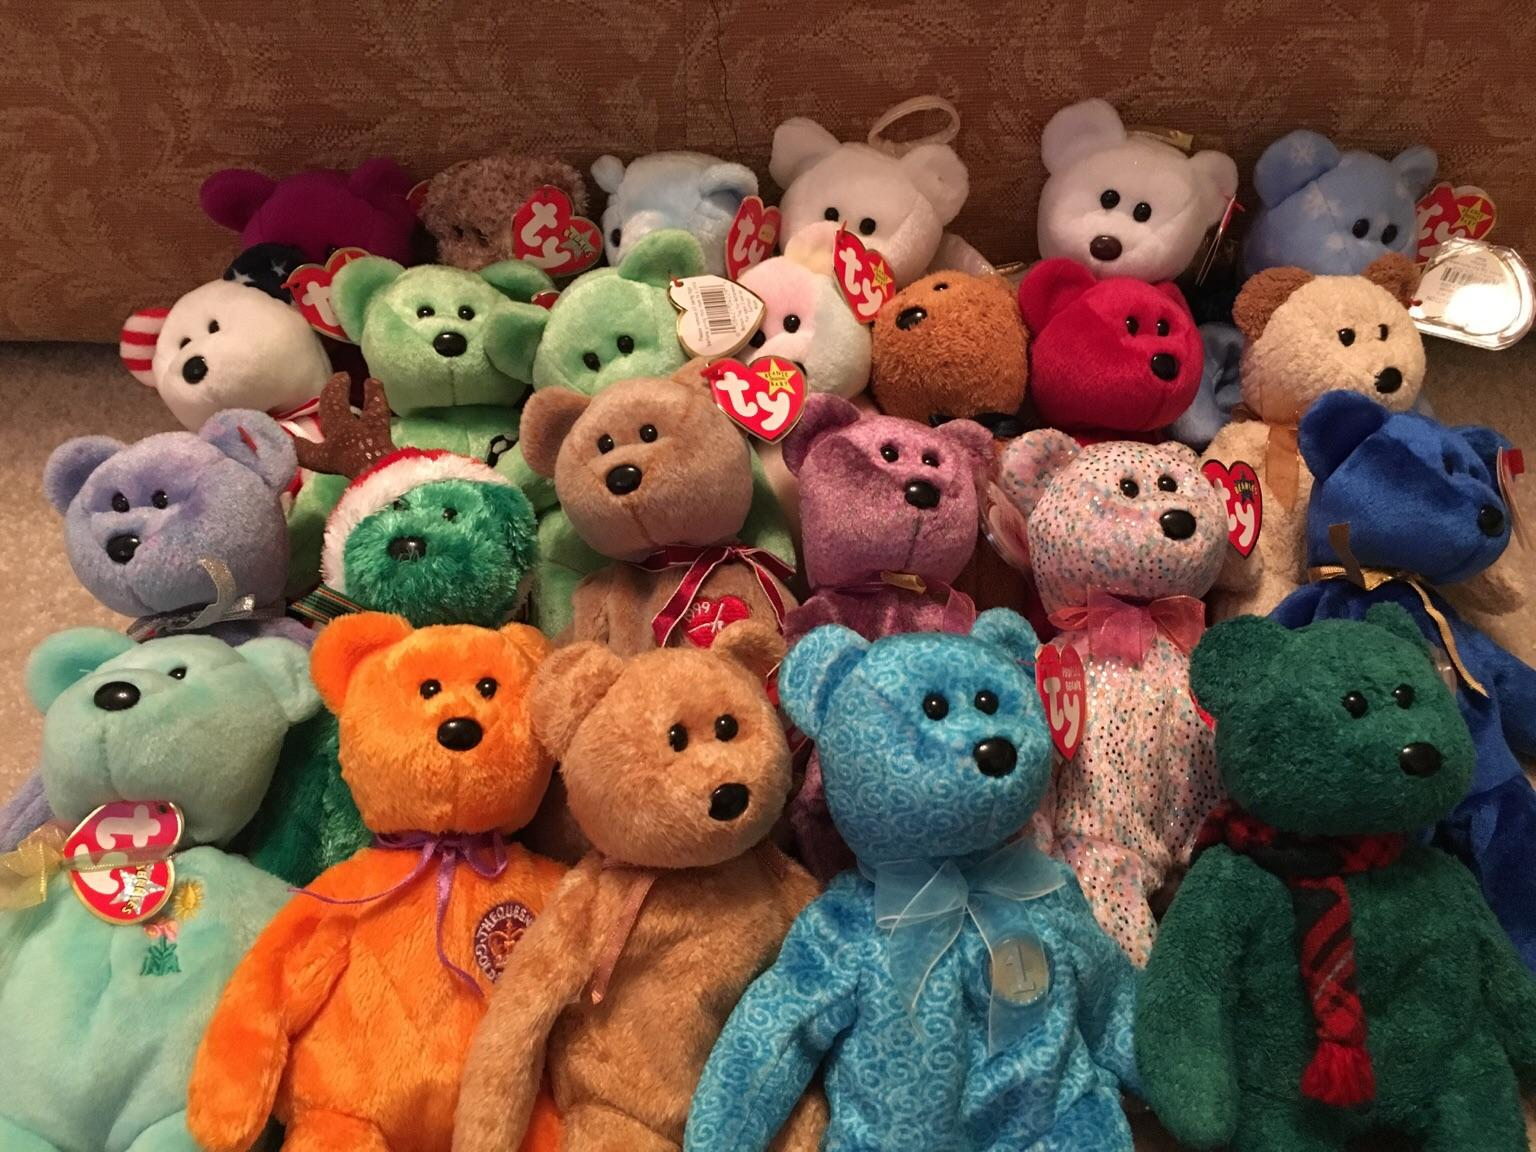 ty original beanie babies bears £3 each tags still attached Retired